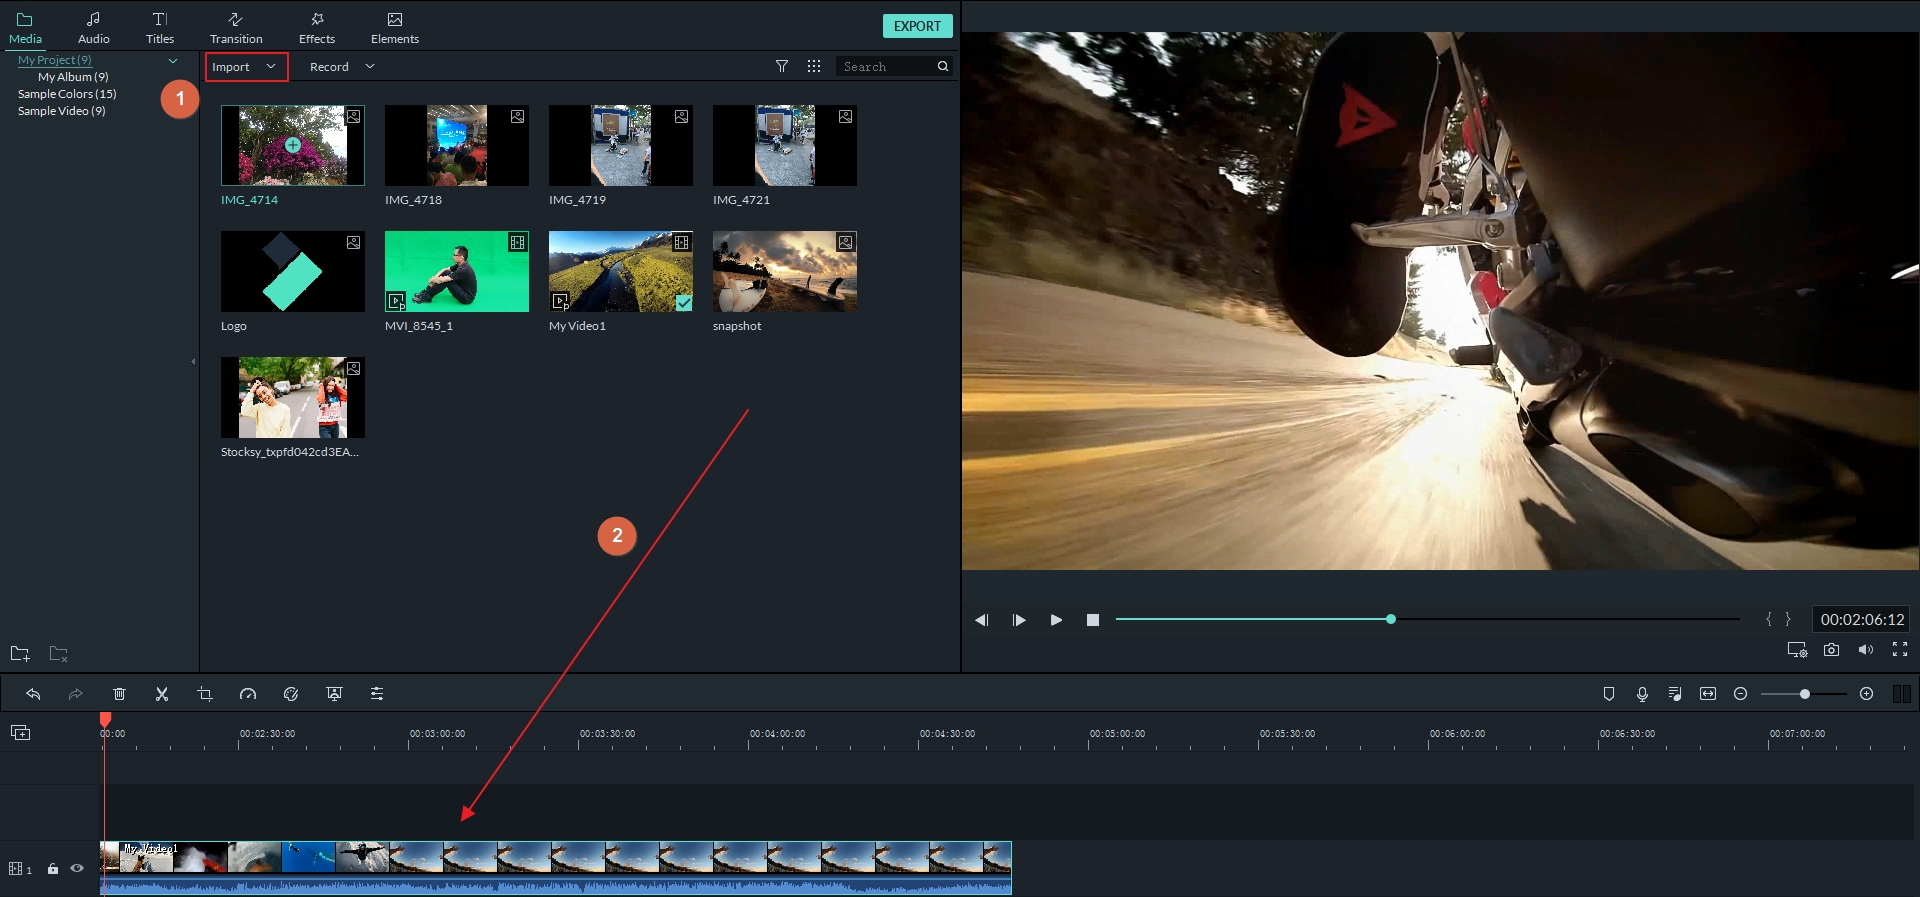 powerdirector video editing software free download full version